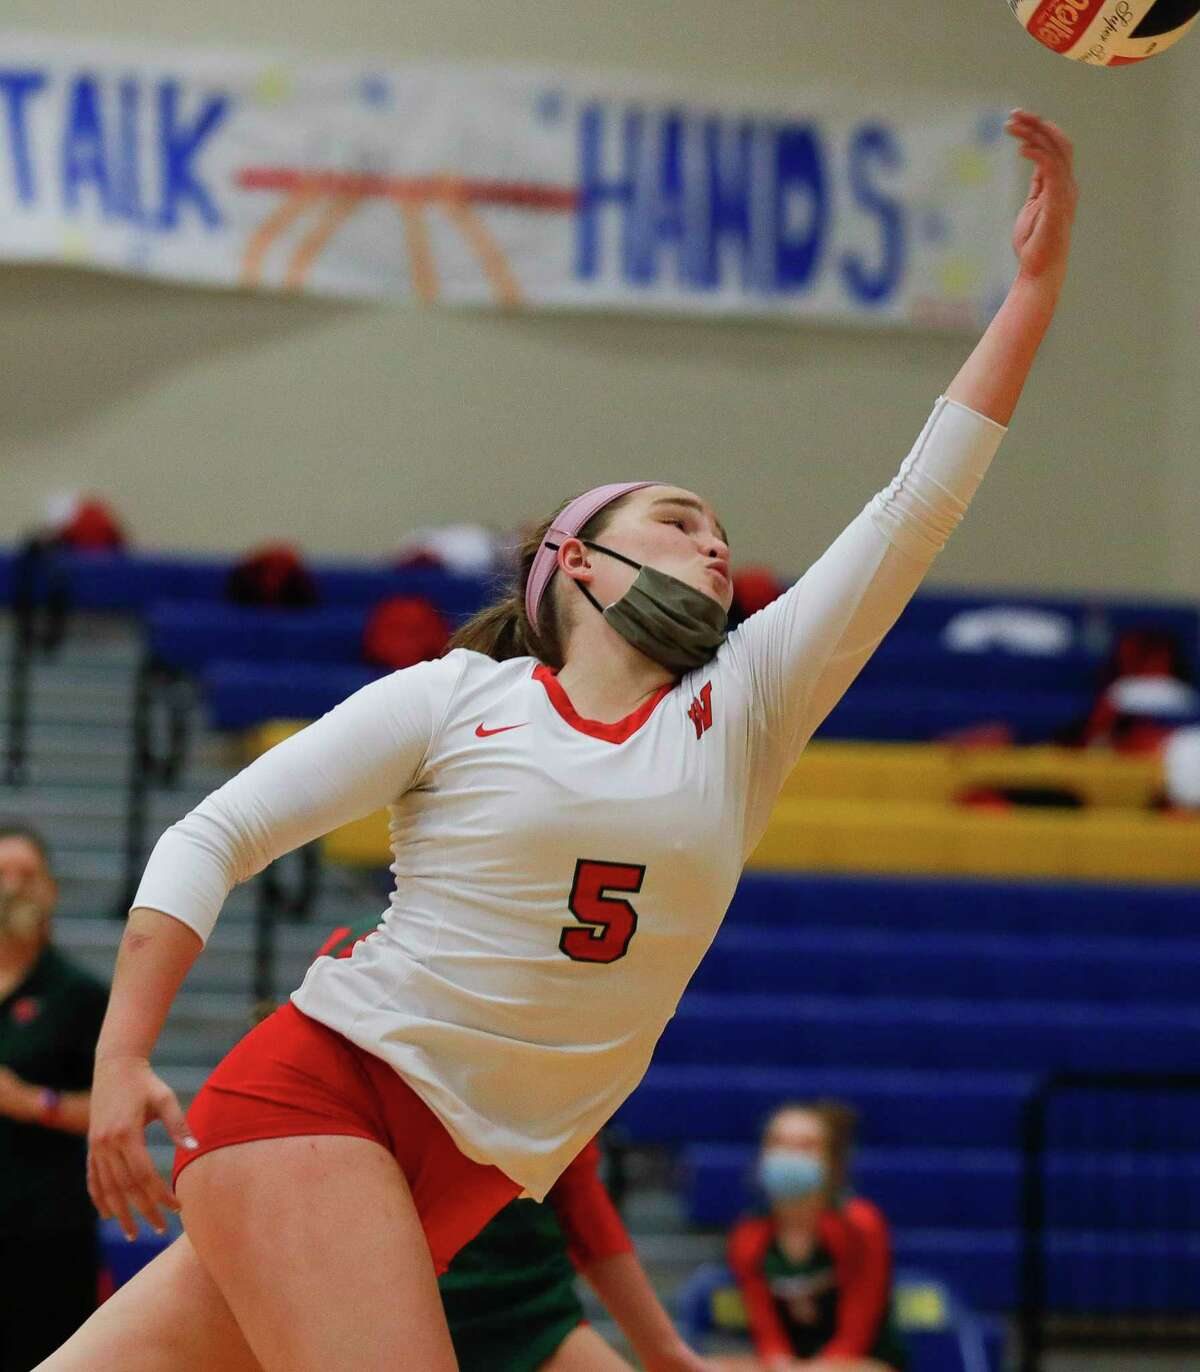 The Woodlands libero Jacqueline Lee (5) tries to save the ball during the first set of a non-district high school volleyball match at Klein High School, Saturday, Oct. 10, 2020, in Spring.